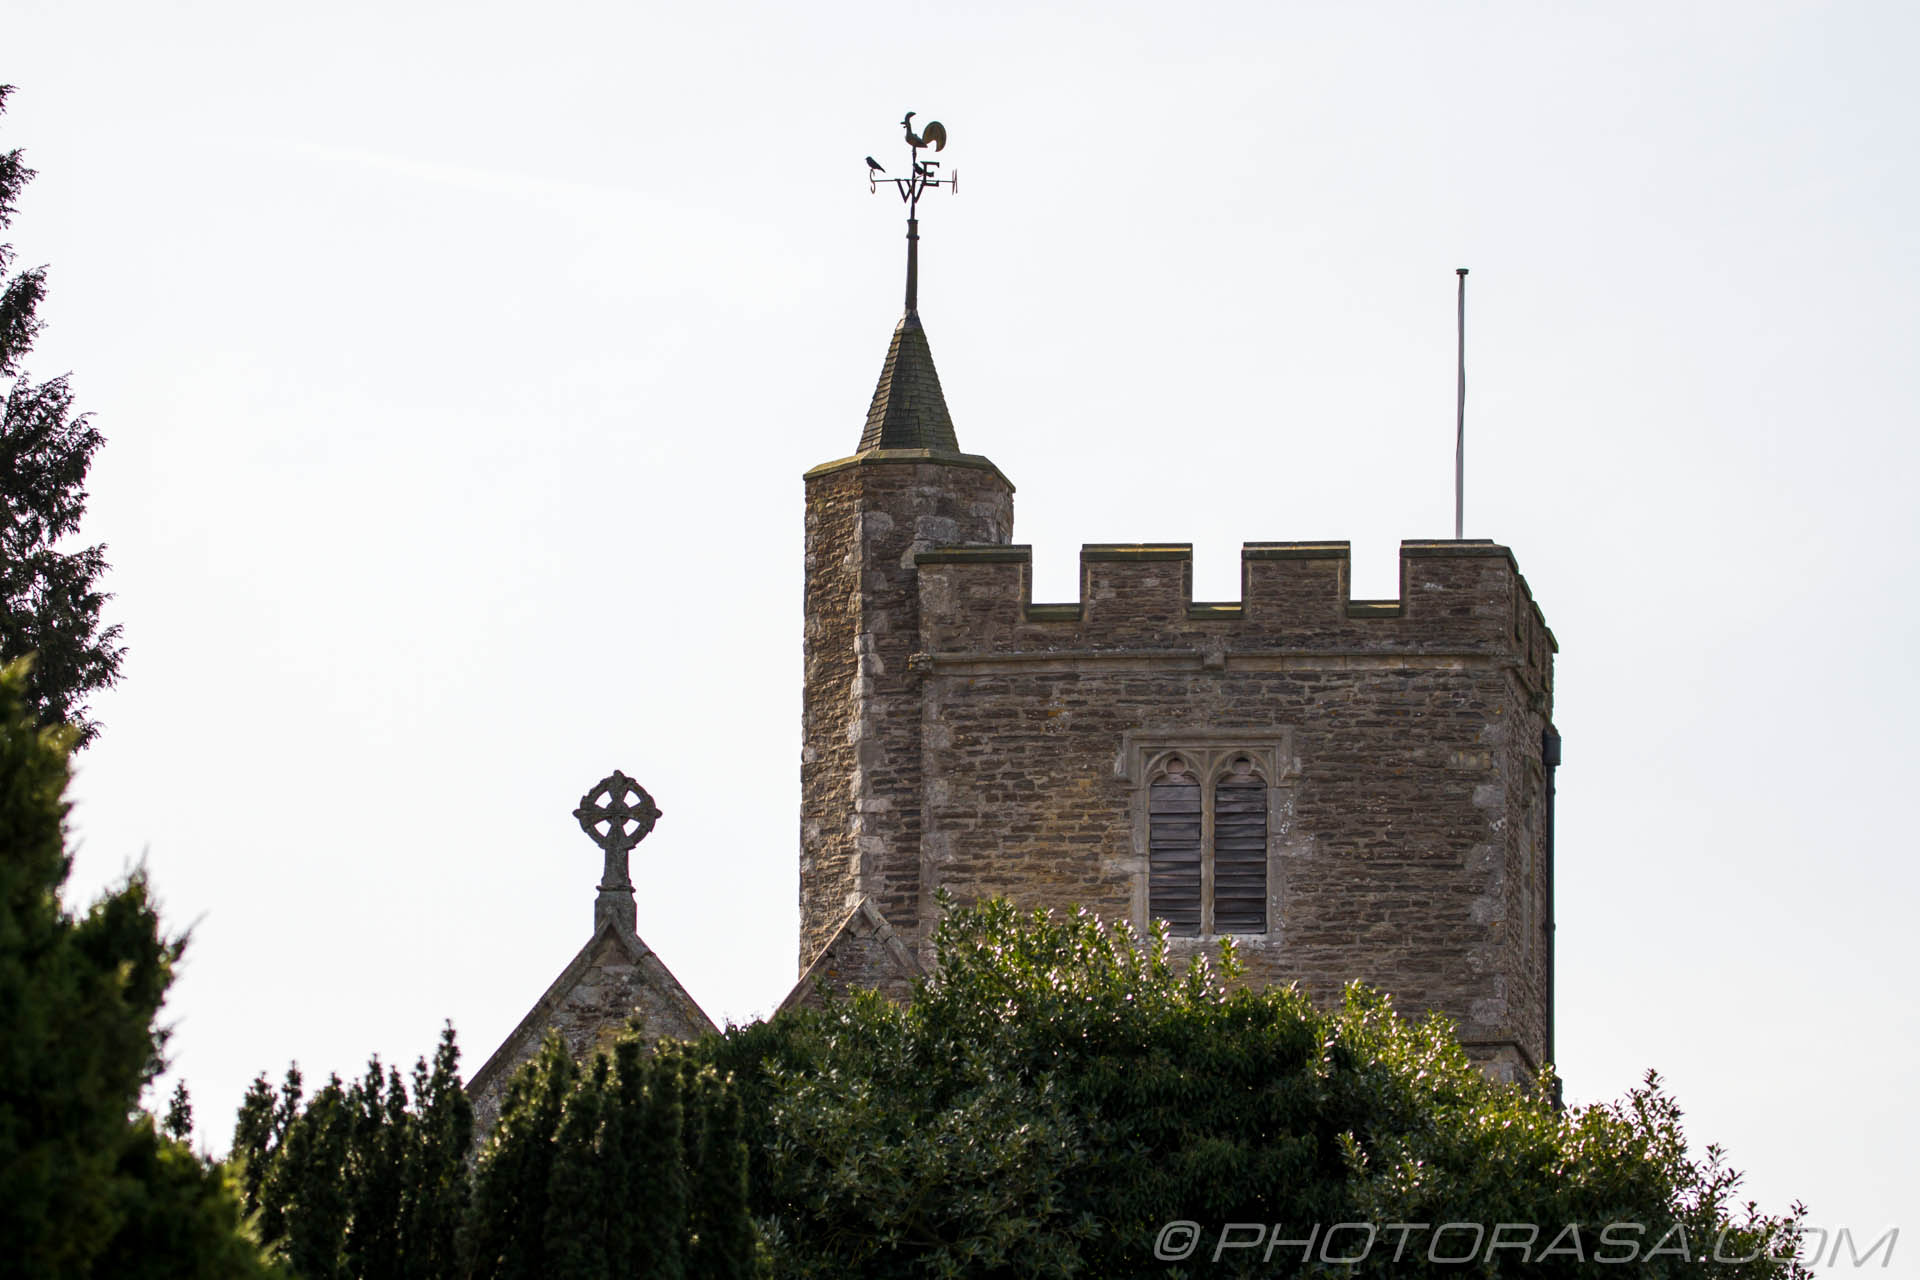 http://photorasa.com/saints-church-staplehurst-kent/church-tower/